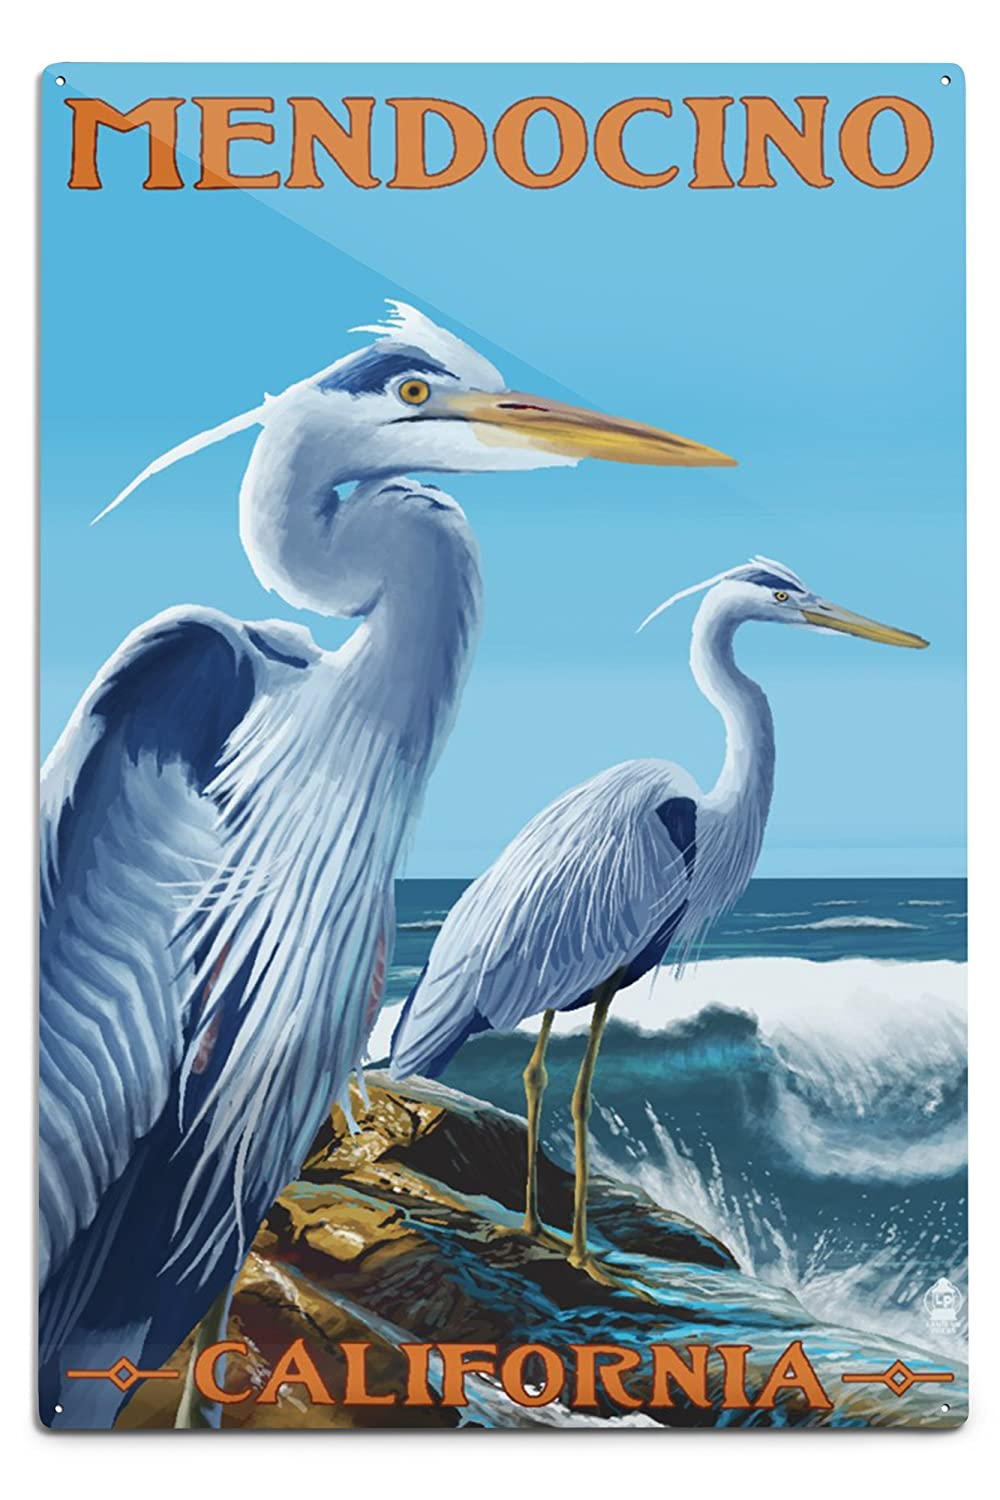 最高級 Mendocino、カリフォルニア – x Blue x Metal Herons ( West Coast ) 12 x 18 Metal Sign LANT-72544-12x18M B06Y1JCSMC 12 x 18 Metal Sign, カミタカイグン:cffa988d --- 4x4.lt